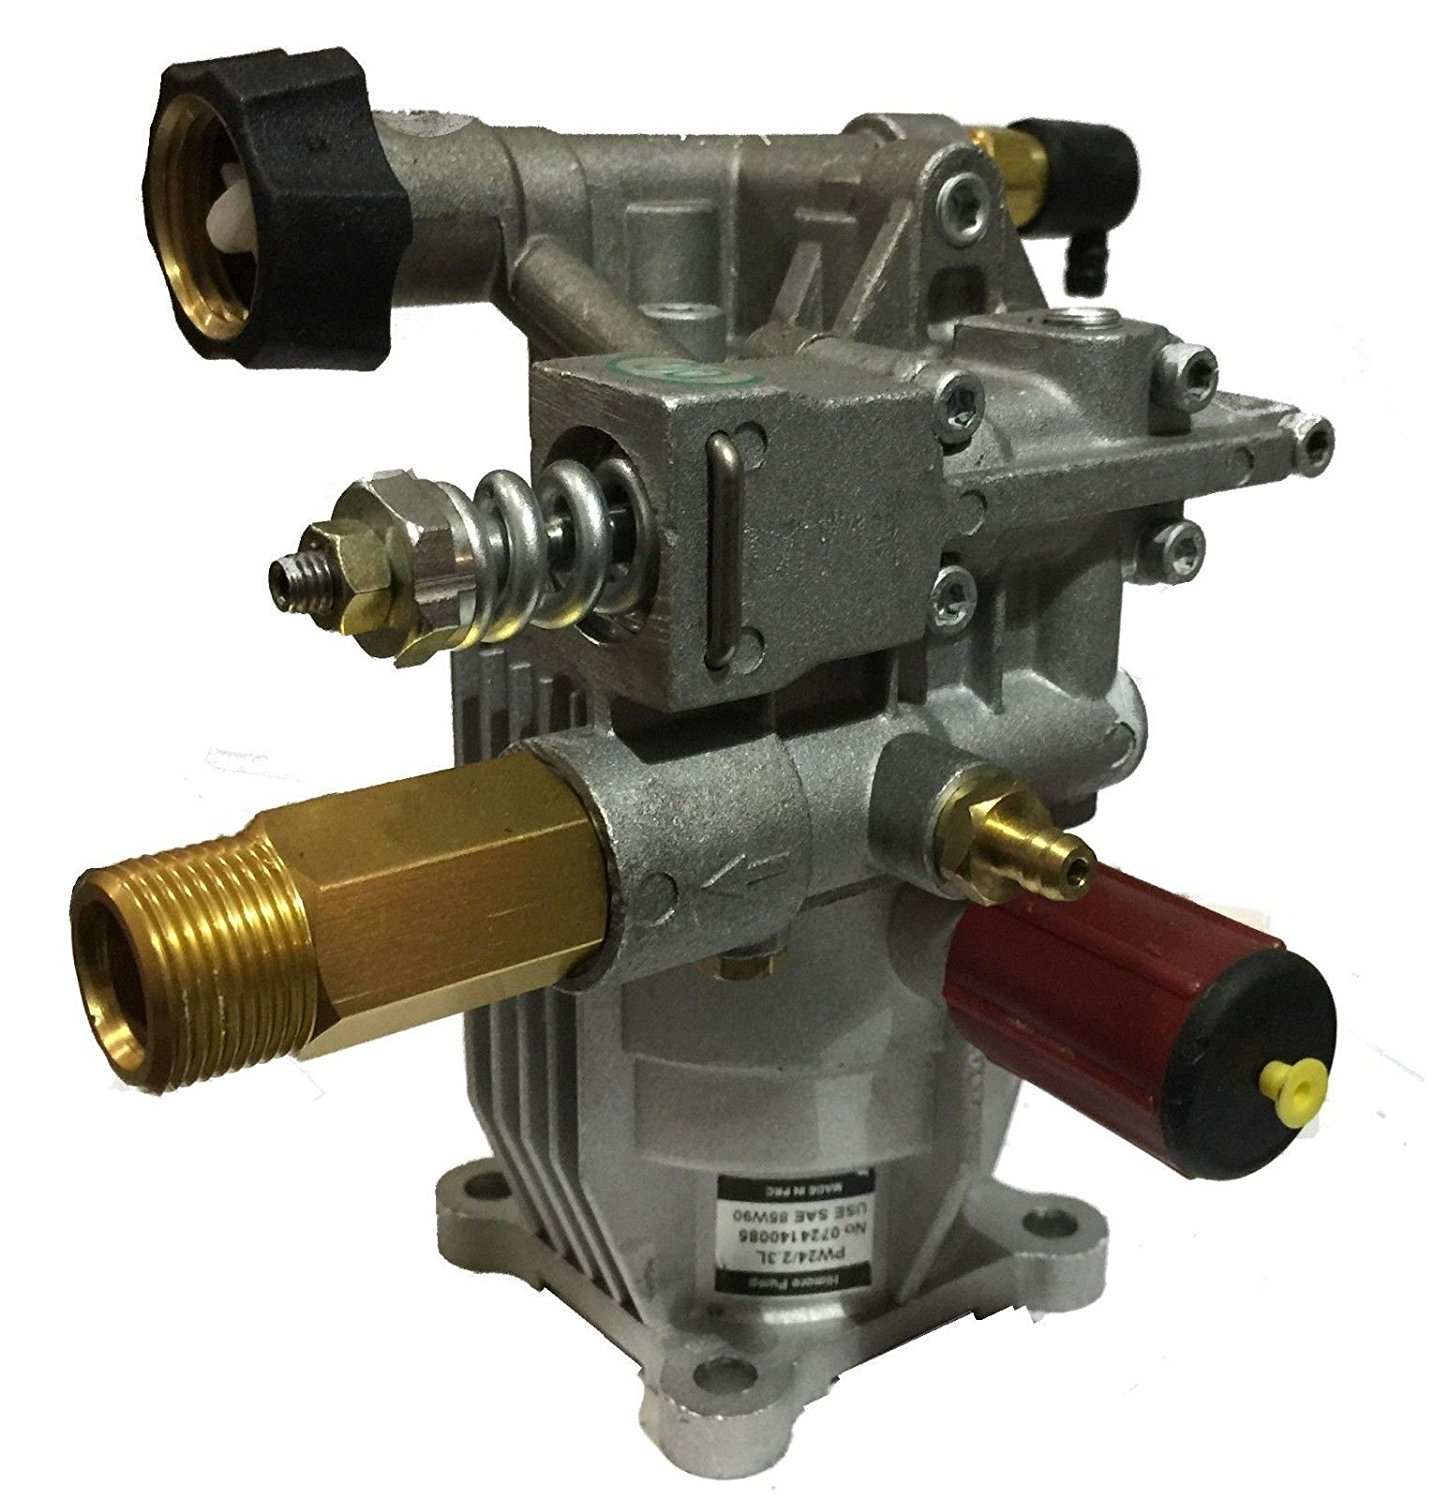 NEW PRESSURE WASHER PUMP Monsoon A01801 D28744 A14292 on XR2500 & XR2600 Excell